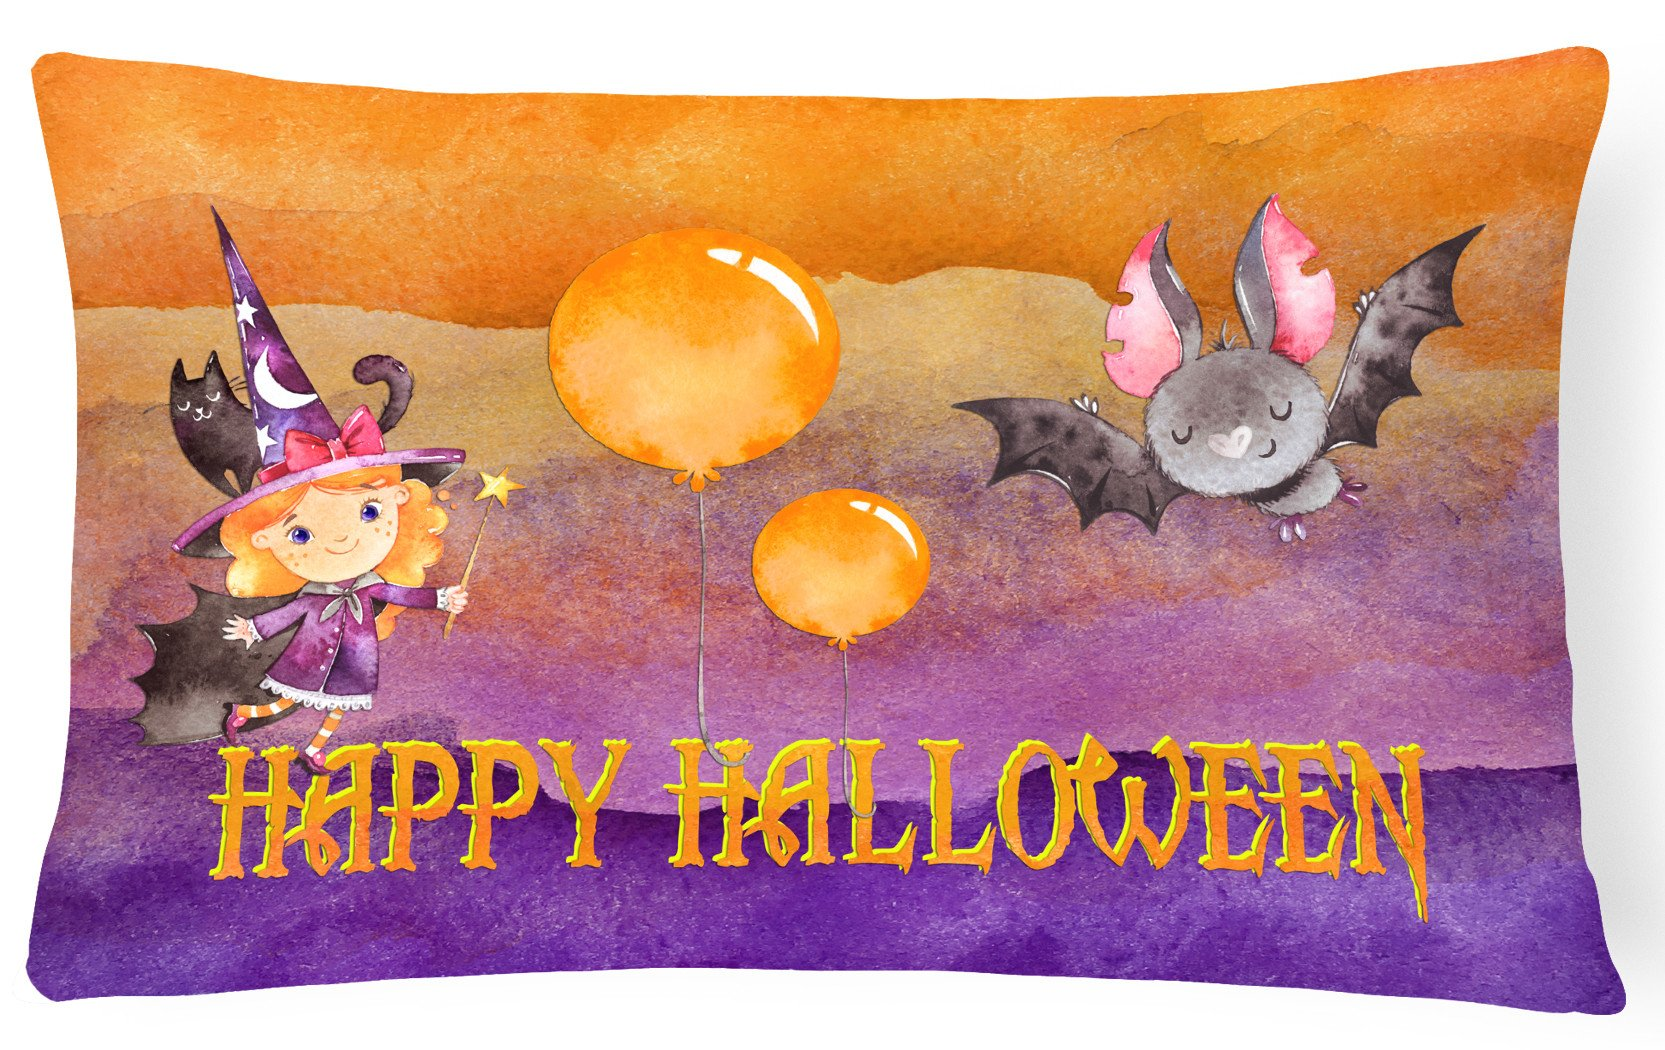 Halloween Little Witch and Bat Canvas Fabric Decorative Pillow BB7458PW1216 by Caroline's Treasures